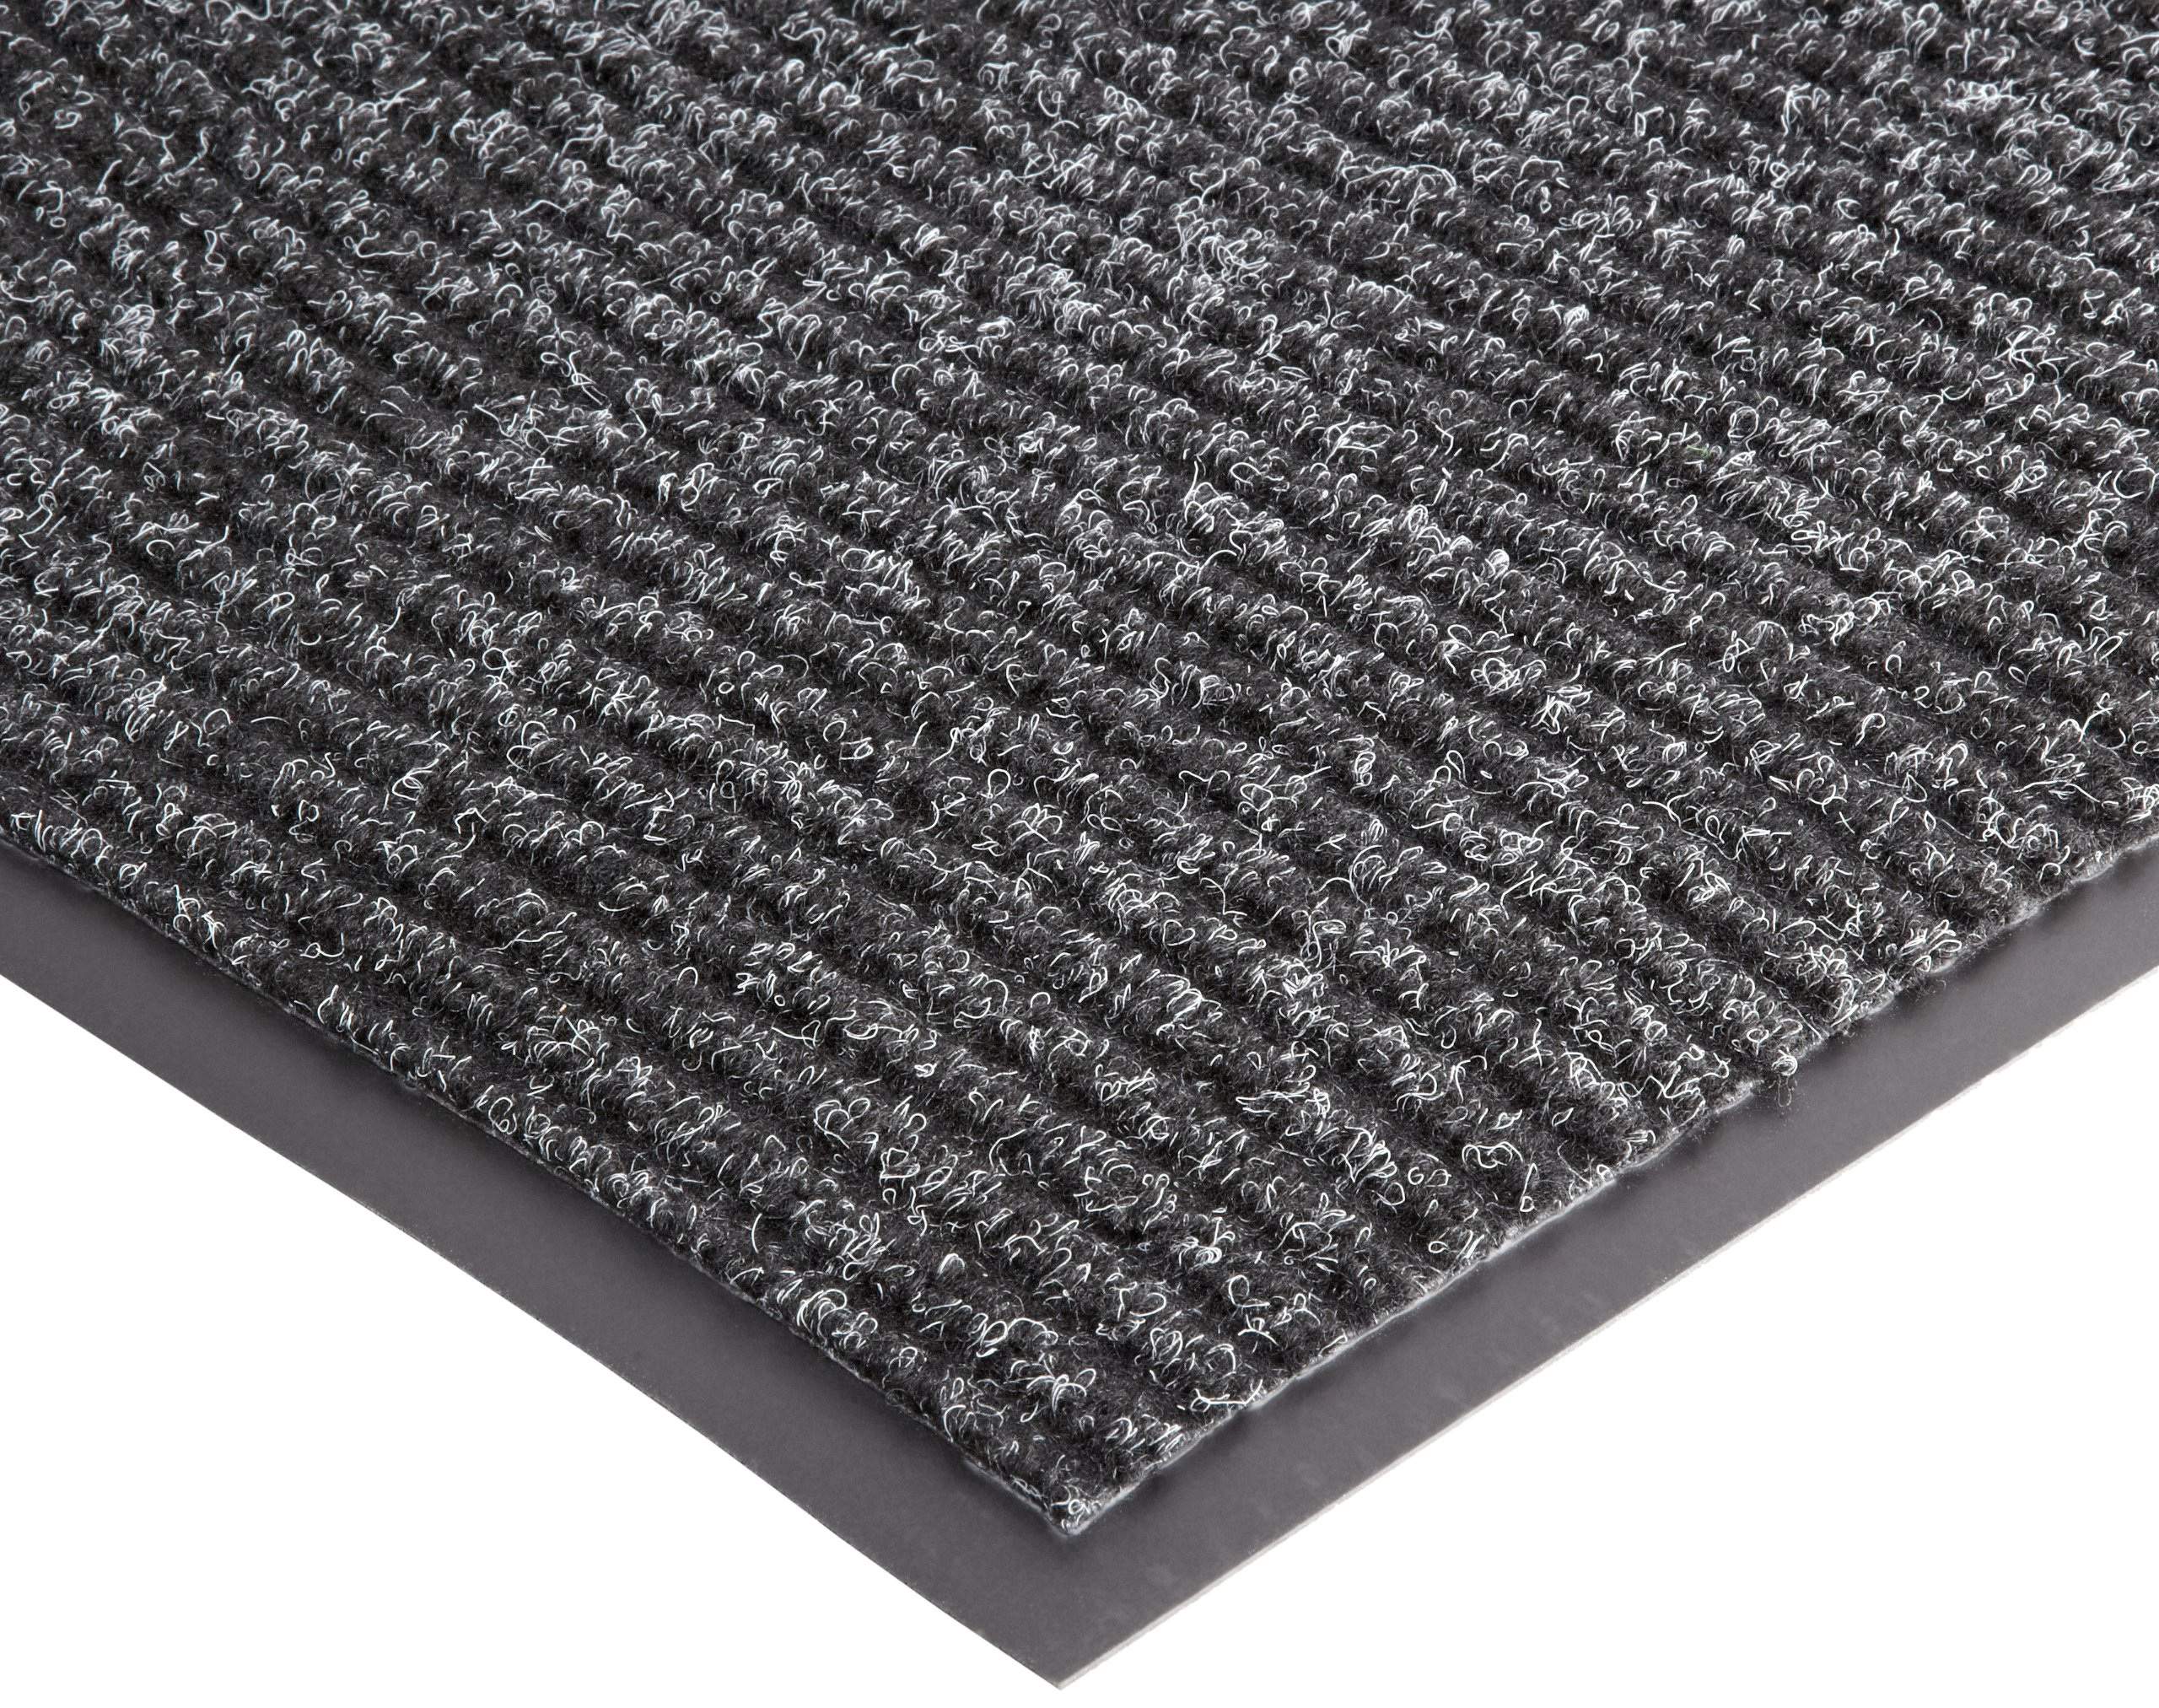 NoTrax 109 Brush Step Entrance Mat, for Lobbies and Indoor Entranceways, 3' Width x 10' Length x 3/8'' Thickness, Charcoal - 109S0310CH